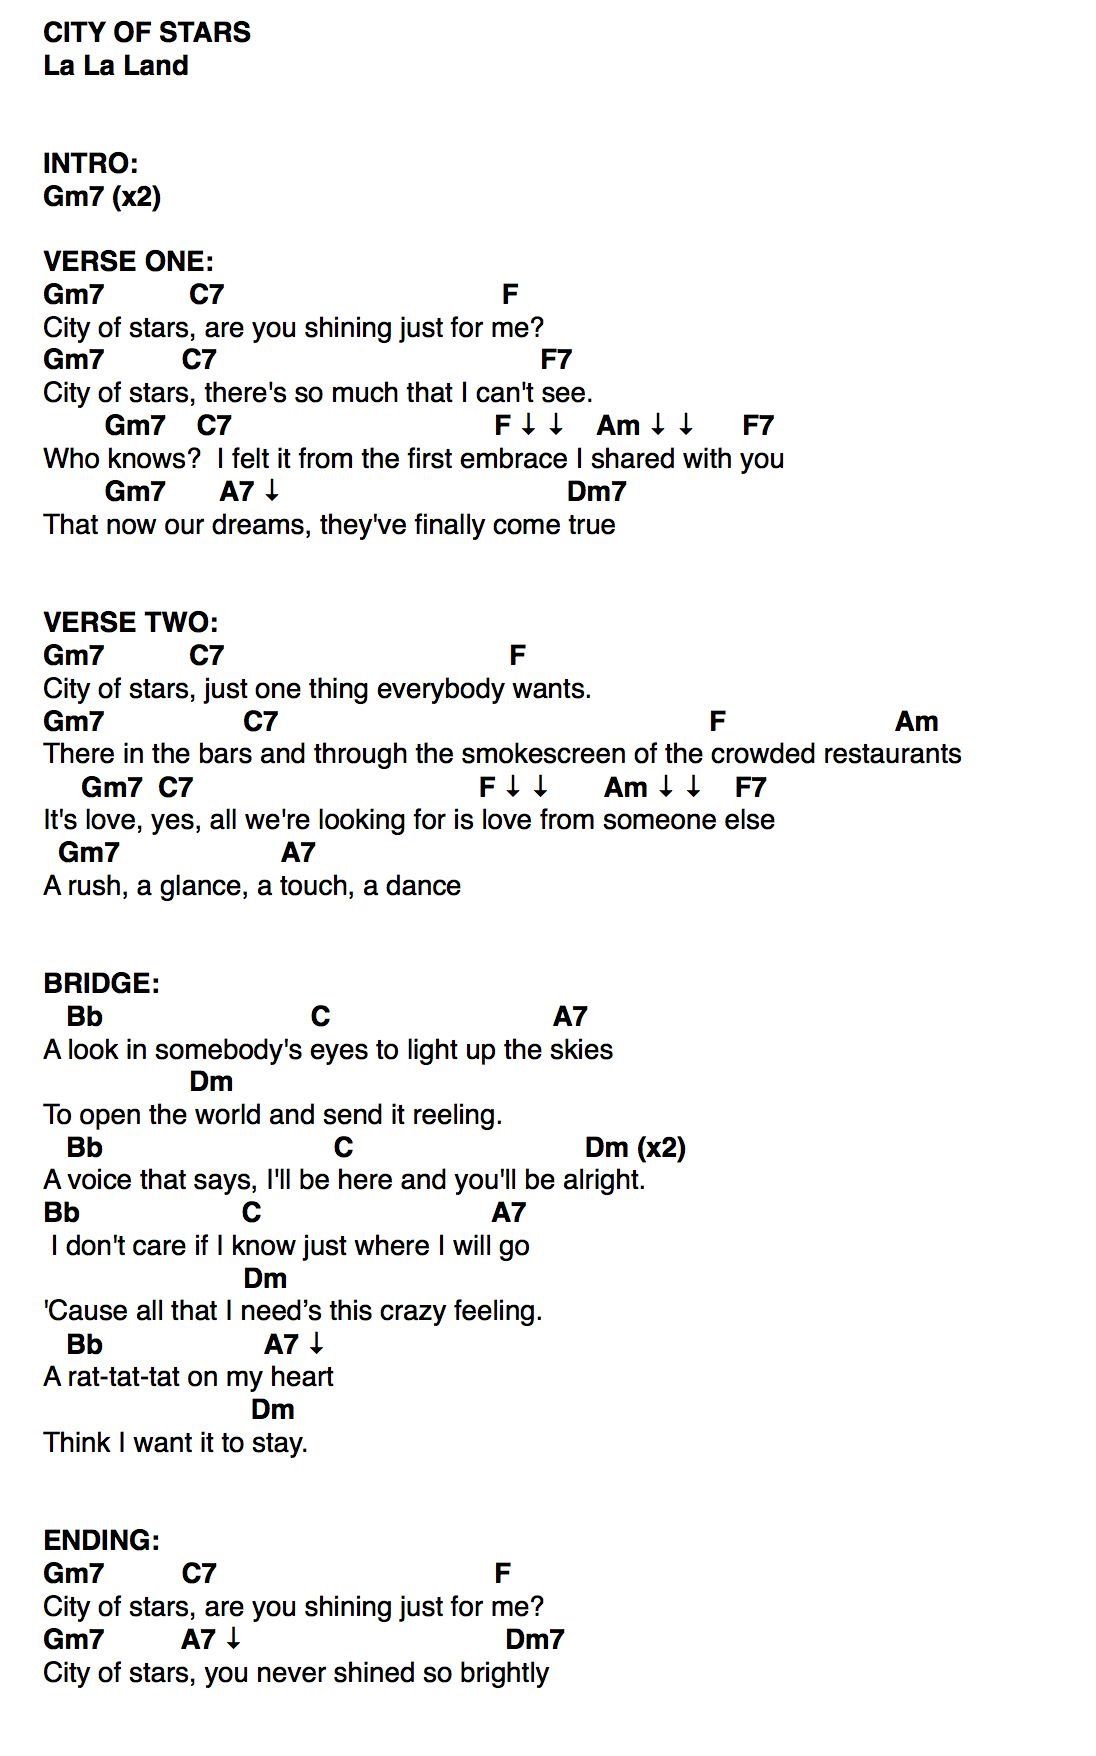 City of stars ukulele chords credits to the ukulele teacher city of stars ukulele chords credits to the ukulele teacher hexwebz Image collections